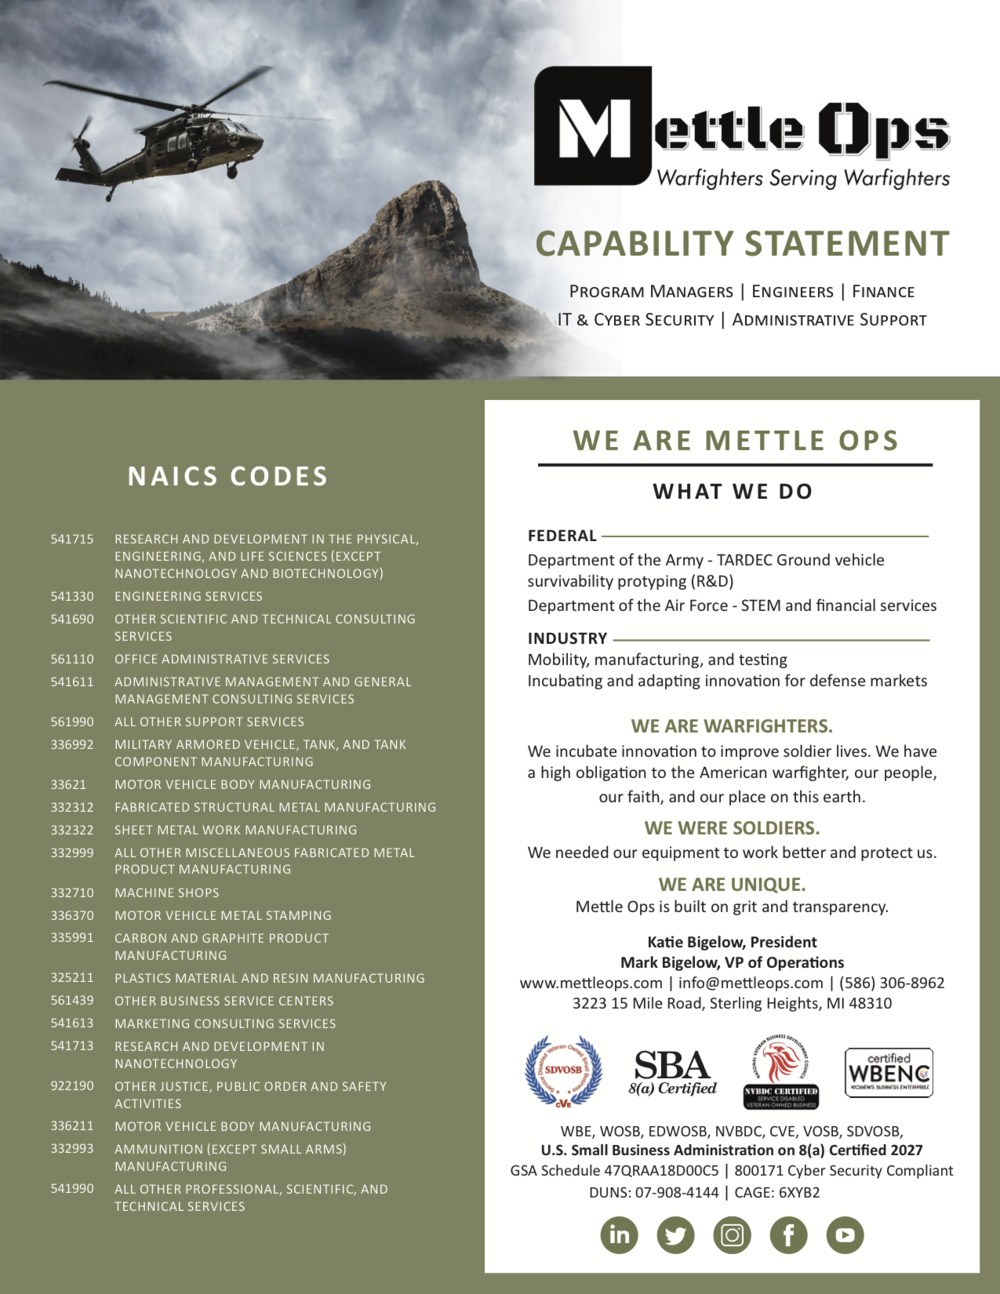 MO Capability Statement 10 03 18.png